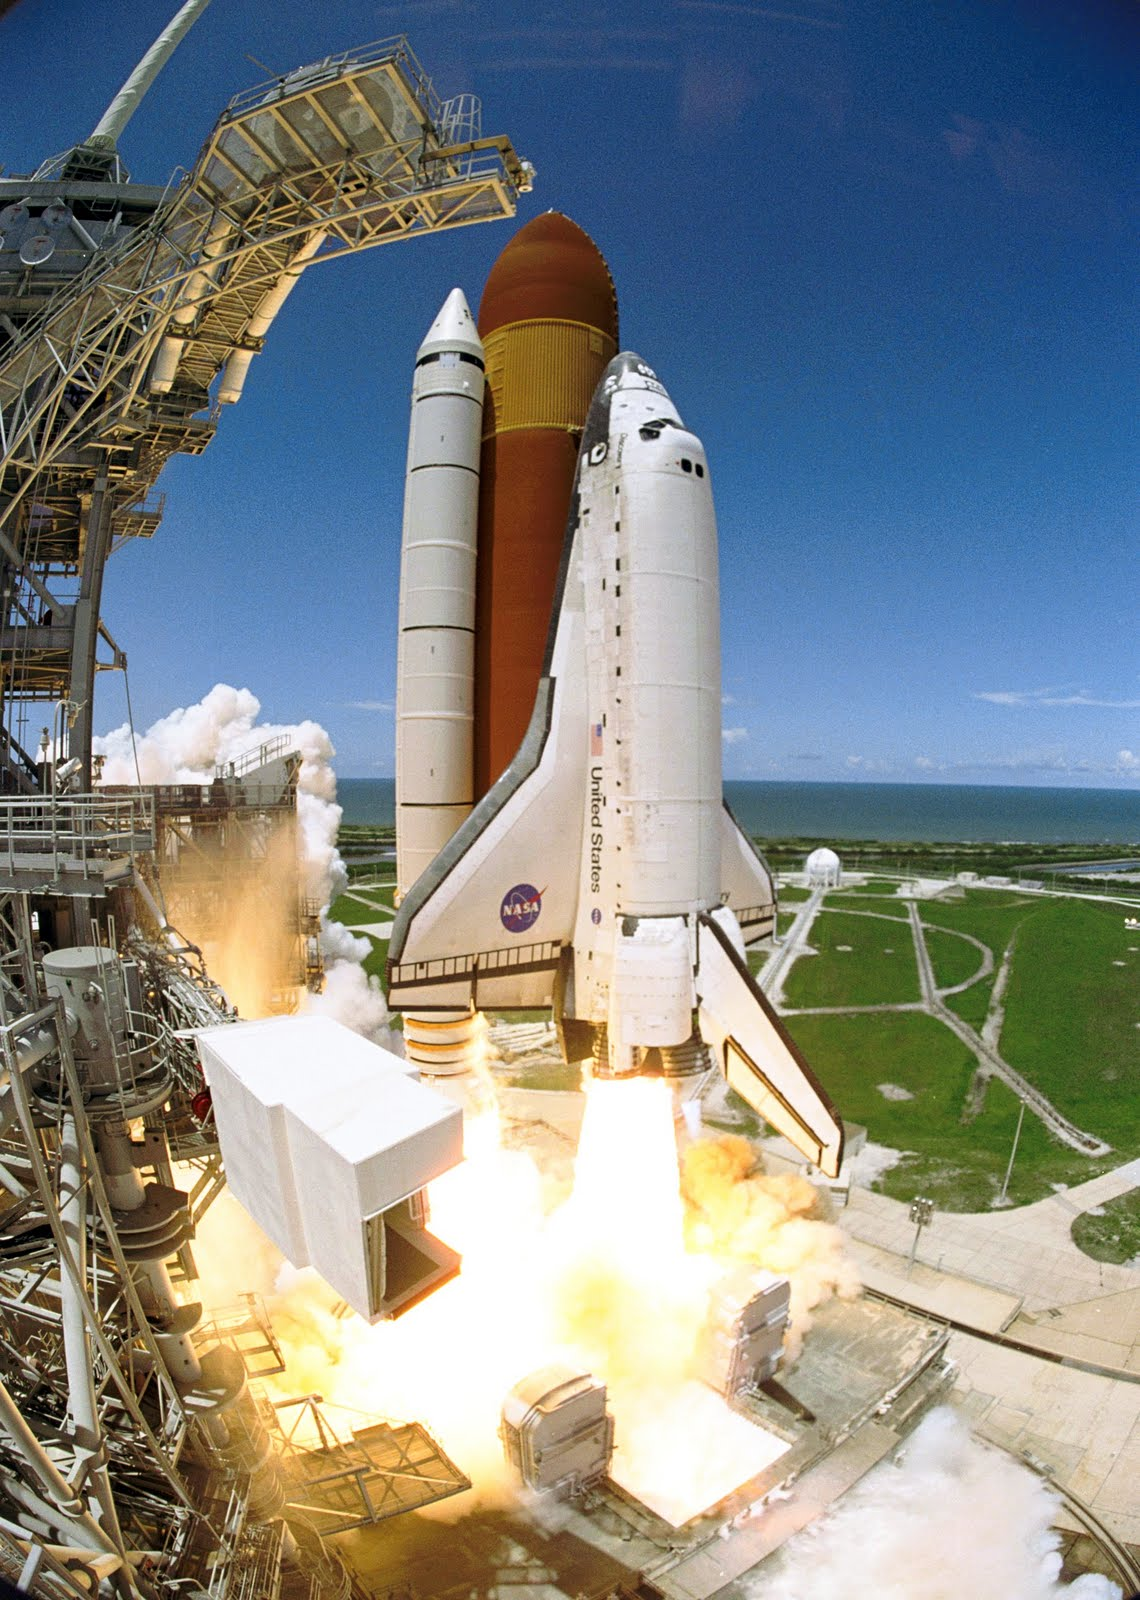 space shuttle now - photo #17